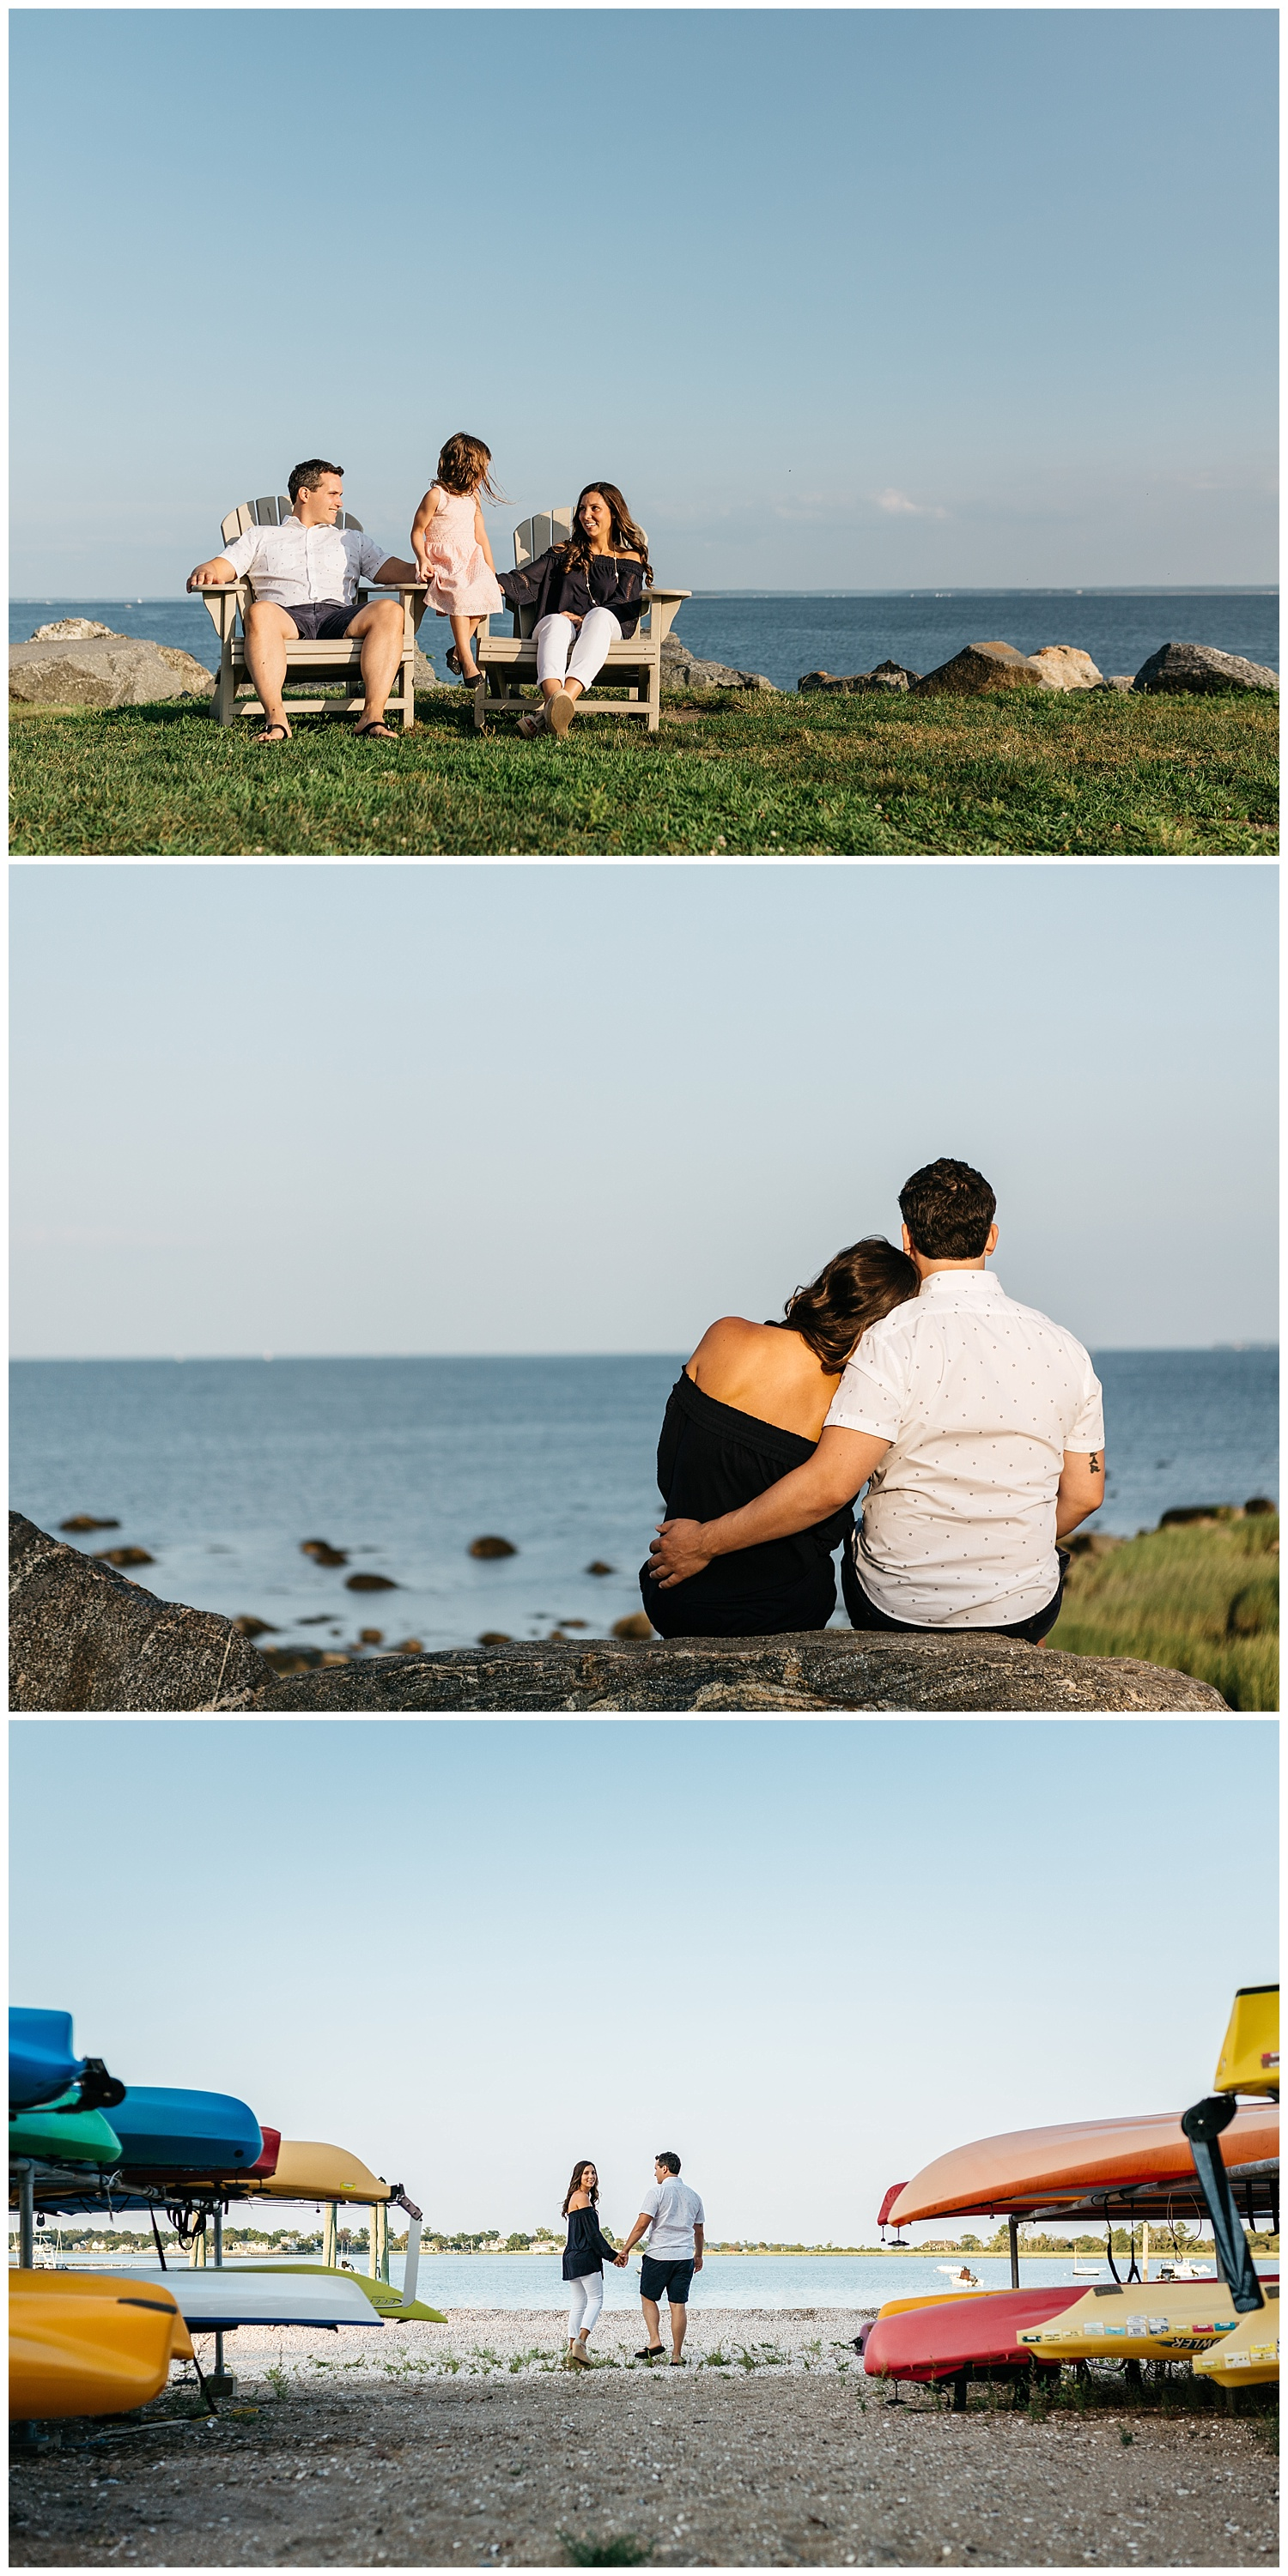 tods point family engagement session by laura barr photography